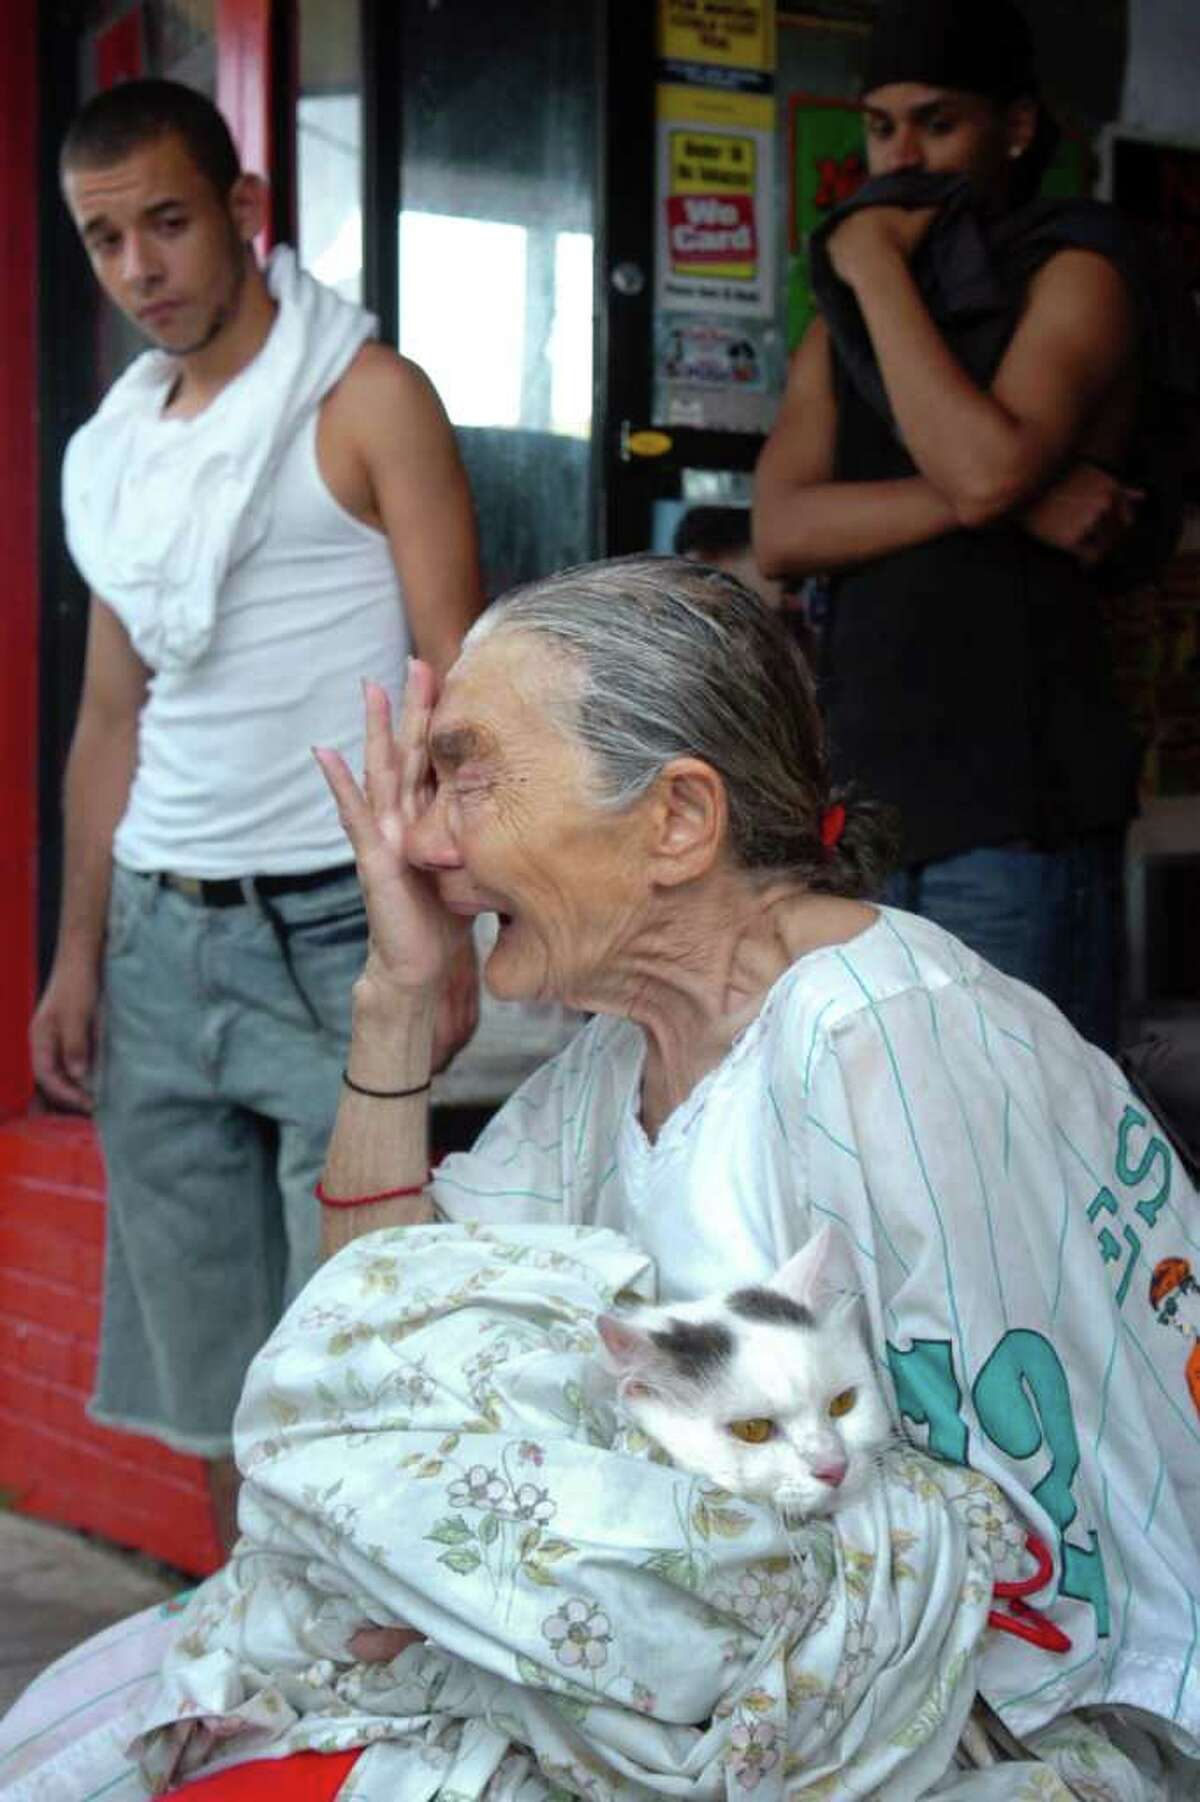 Luz Acevero, 77, holds her cat Papito and cries in front of her apartment building at 503-519 East Main St., in Bridgeport, Conn. Monday June 28th, 2010. The roof of the building was damaged in last Thursday's storm, and residents were evacuated Monday after it began to leak during a thunderstorm, raising concerns that it might collapse.